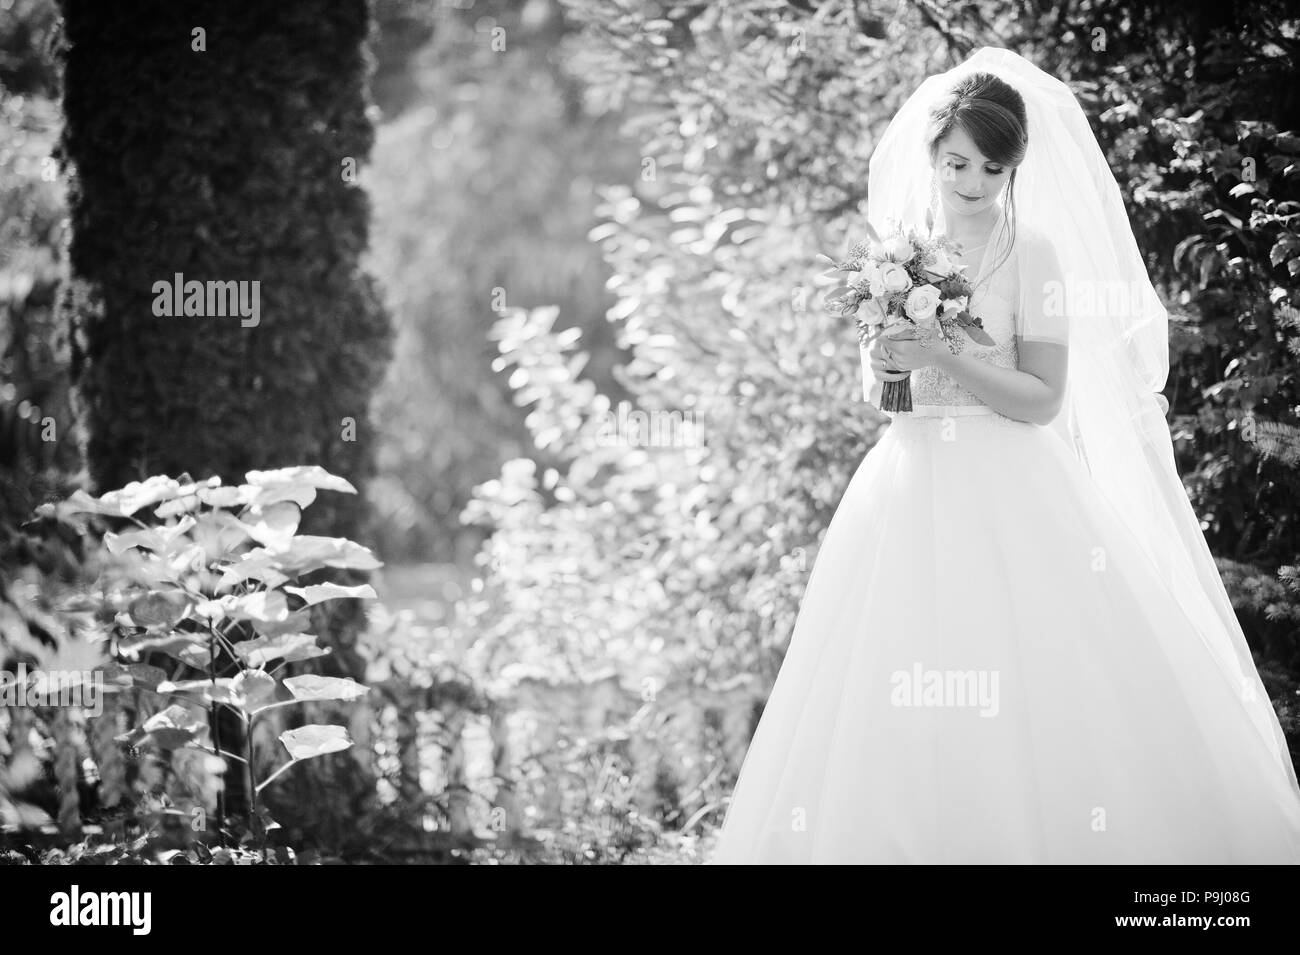 Portrait of a gentle gorgeous bride holding lovely wedding bouquet in her hands outdoors. - Stock Image